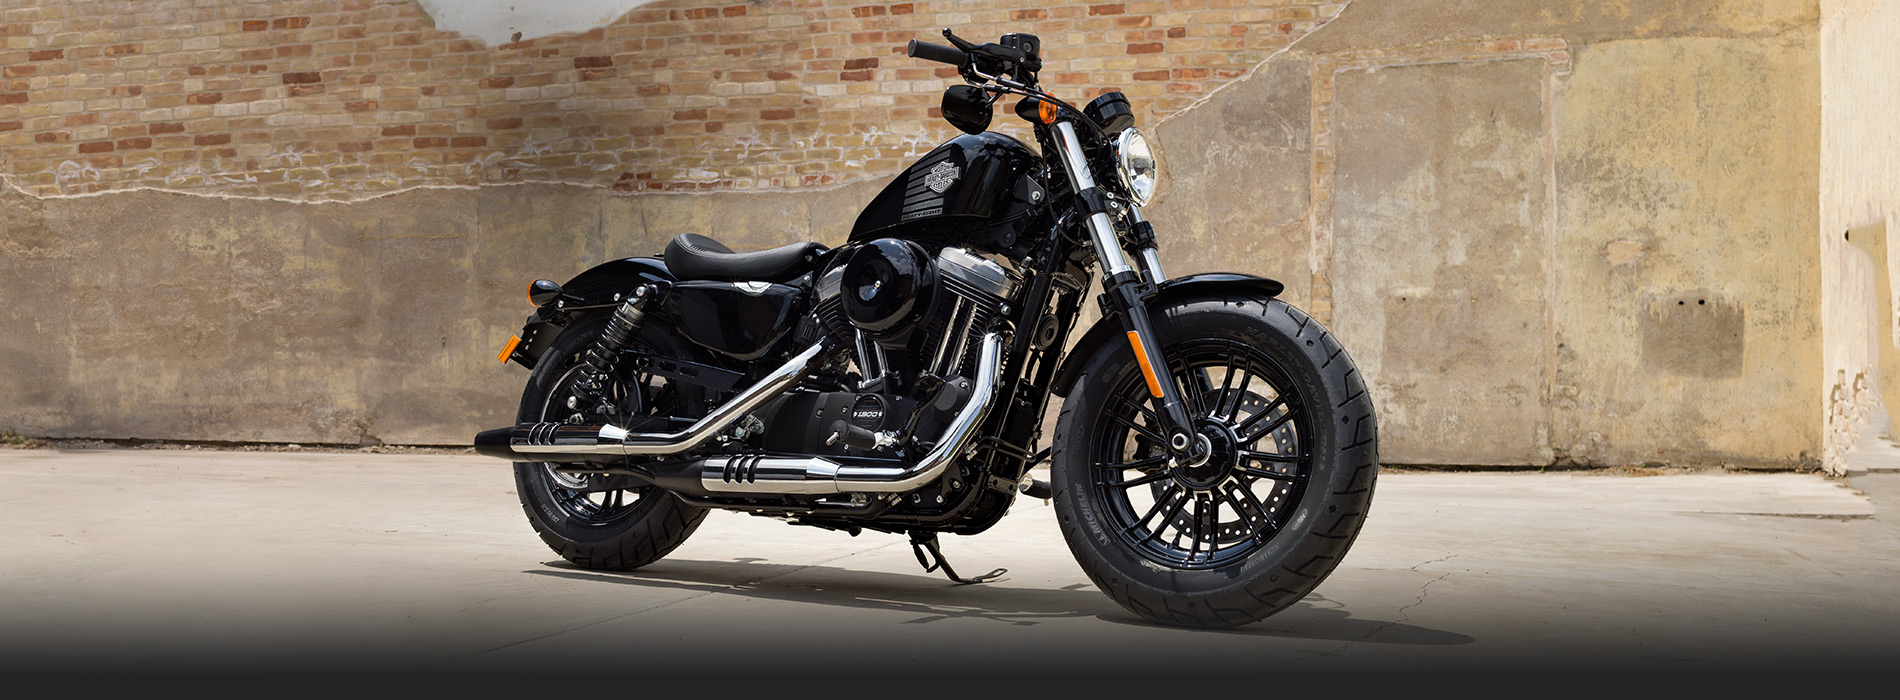 16-hd-forty-eight-1